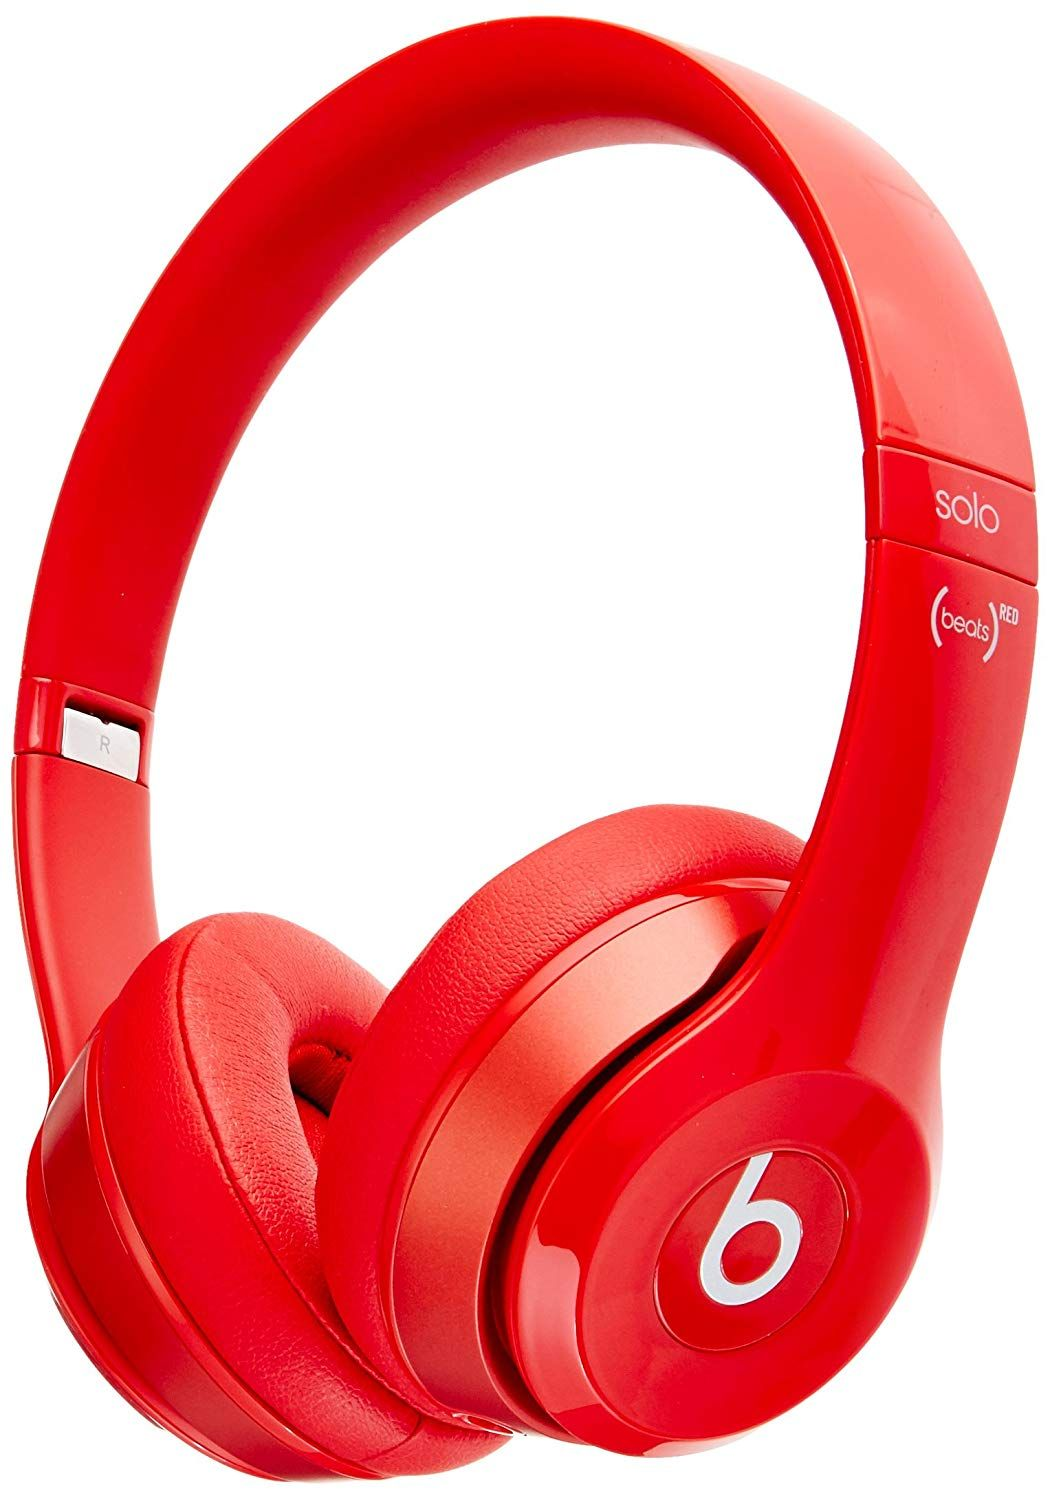 Beats Solo 2 Wired On Ear Headphone Not Wireless Red Refurbished Headphones Beats Headphones Wireless Wireless Headphones